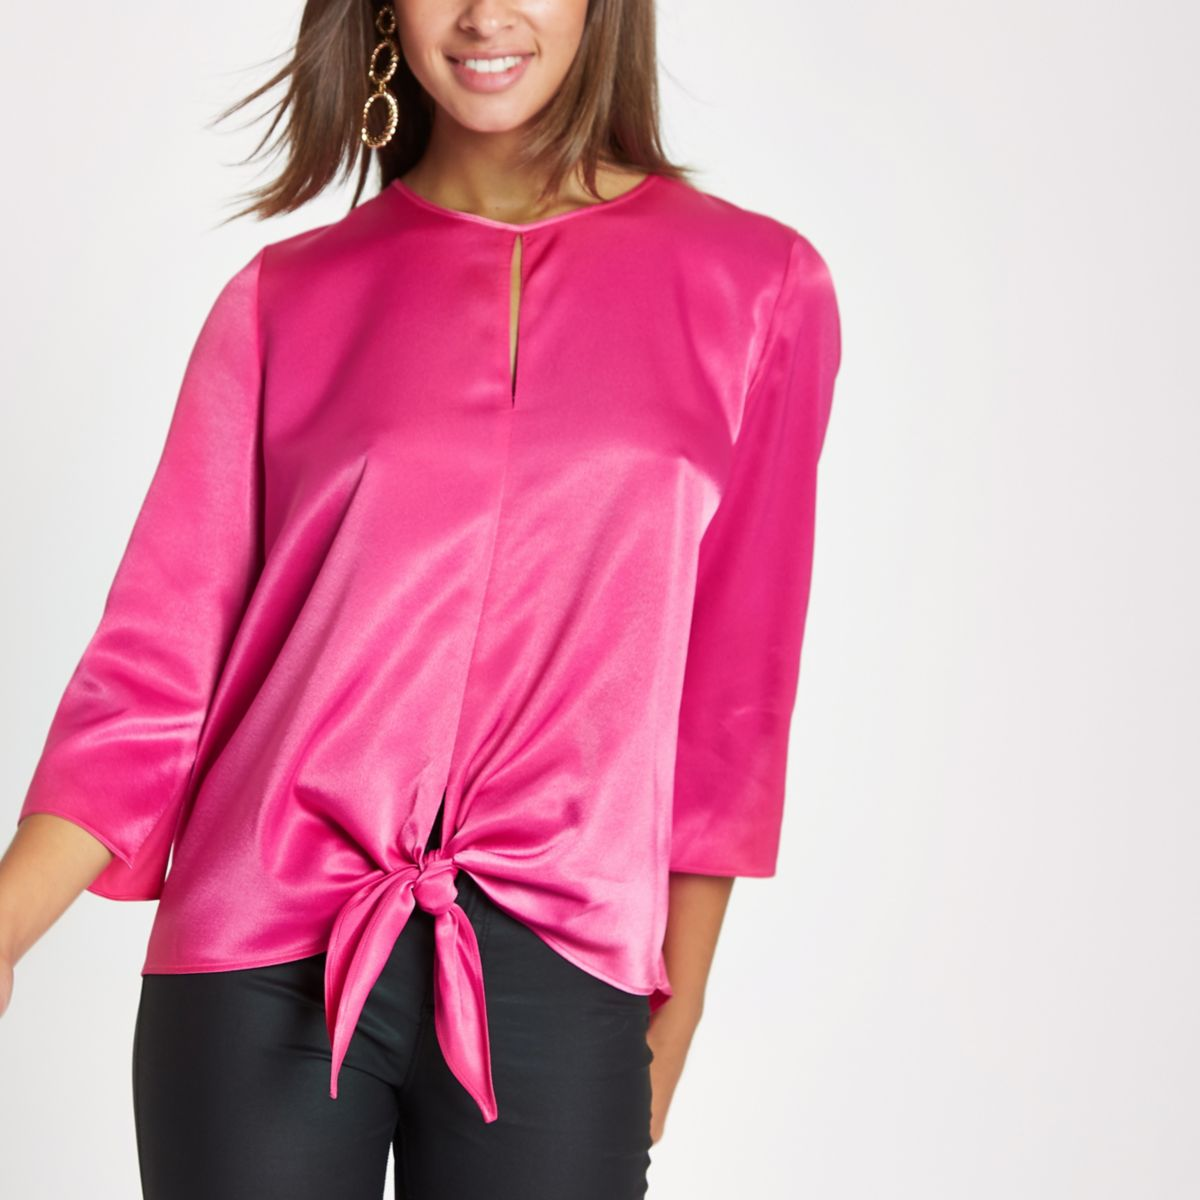 Pink tie front long sleeve top